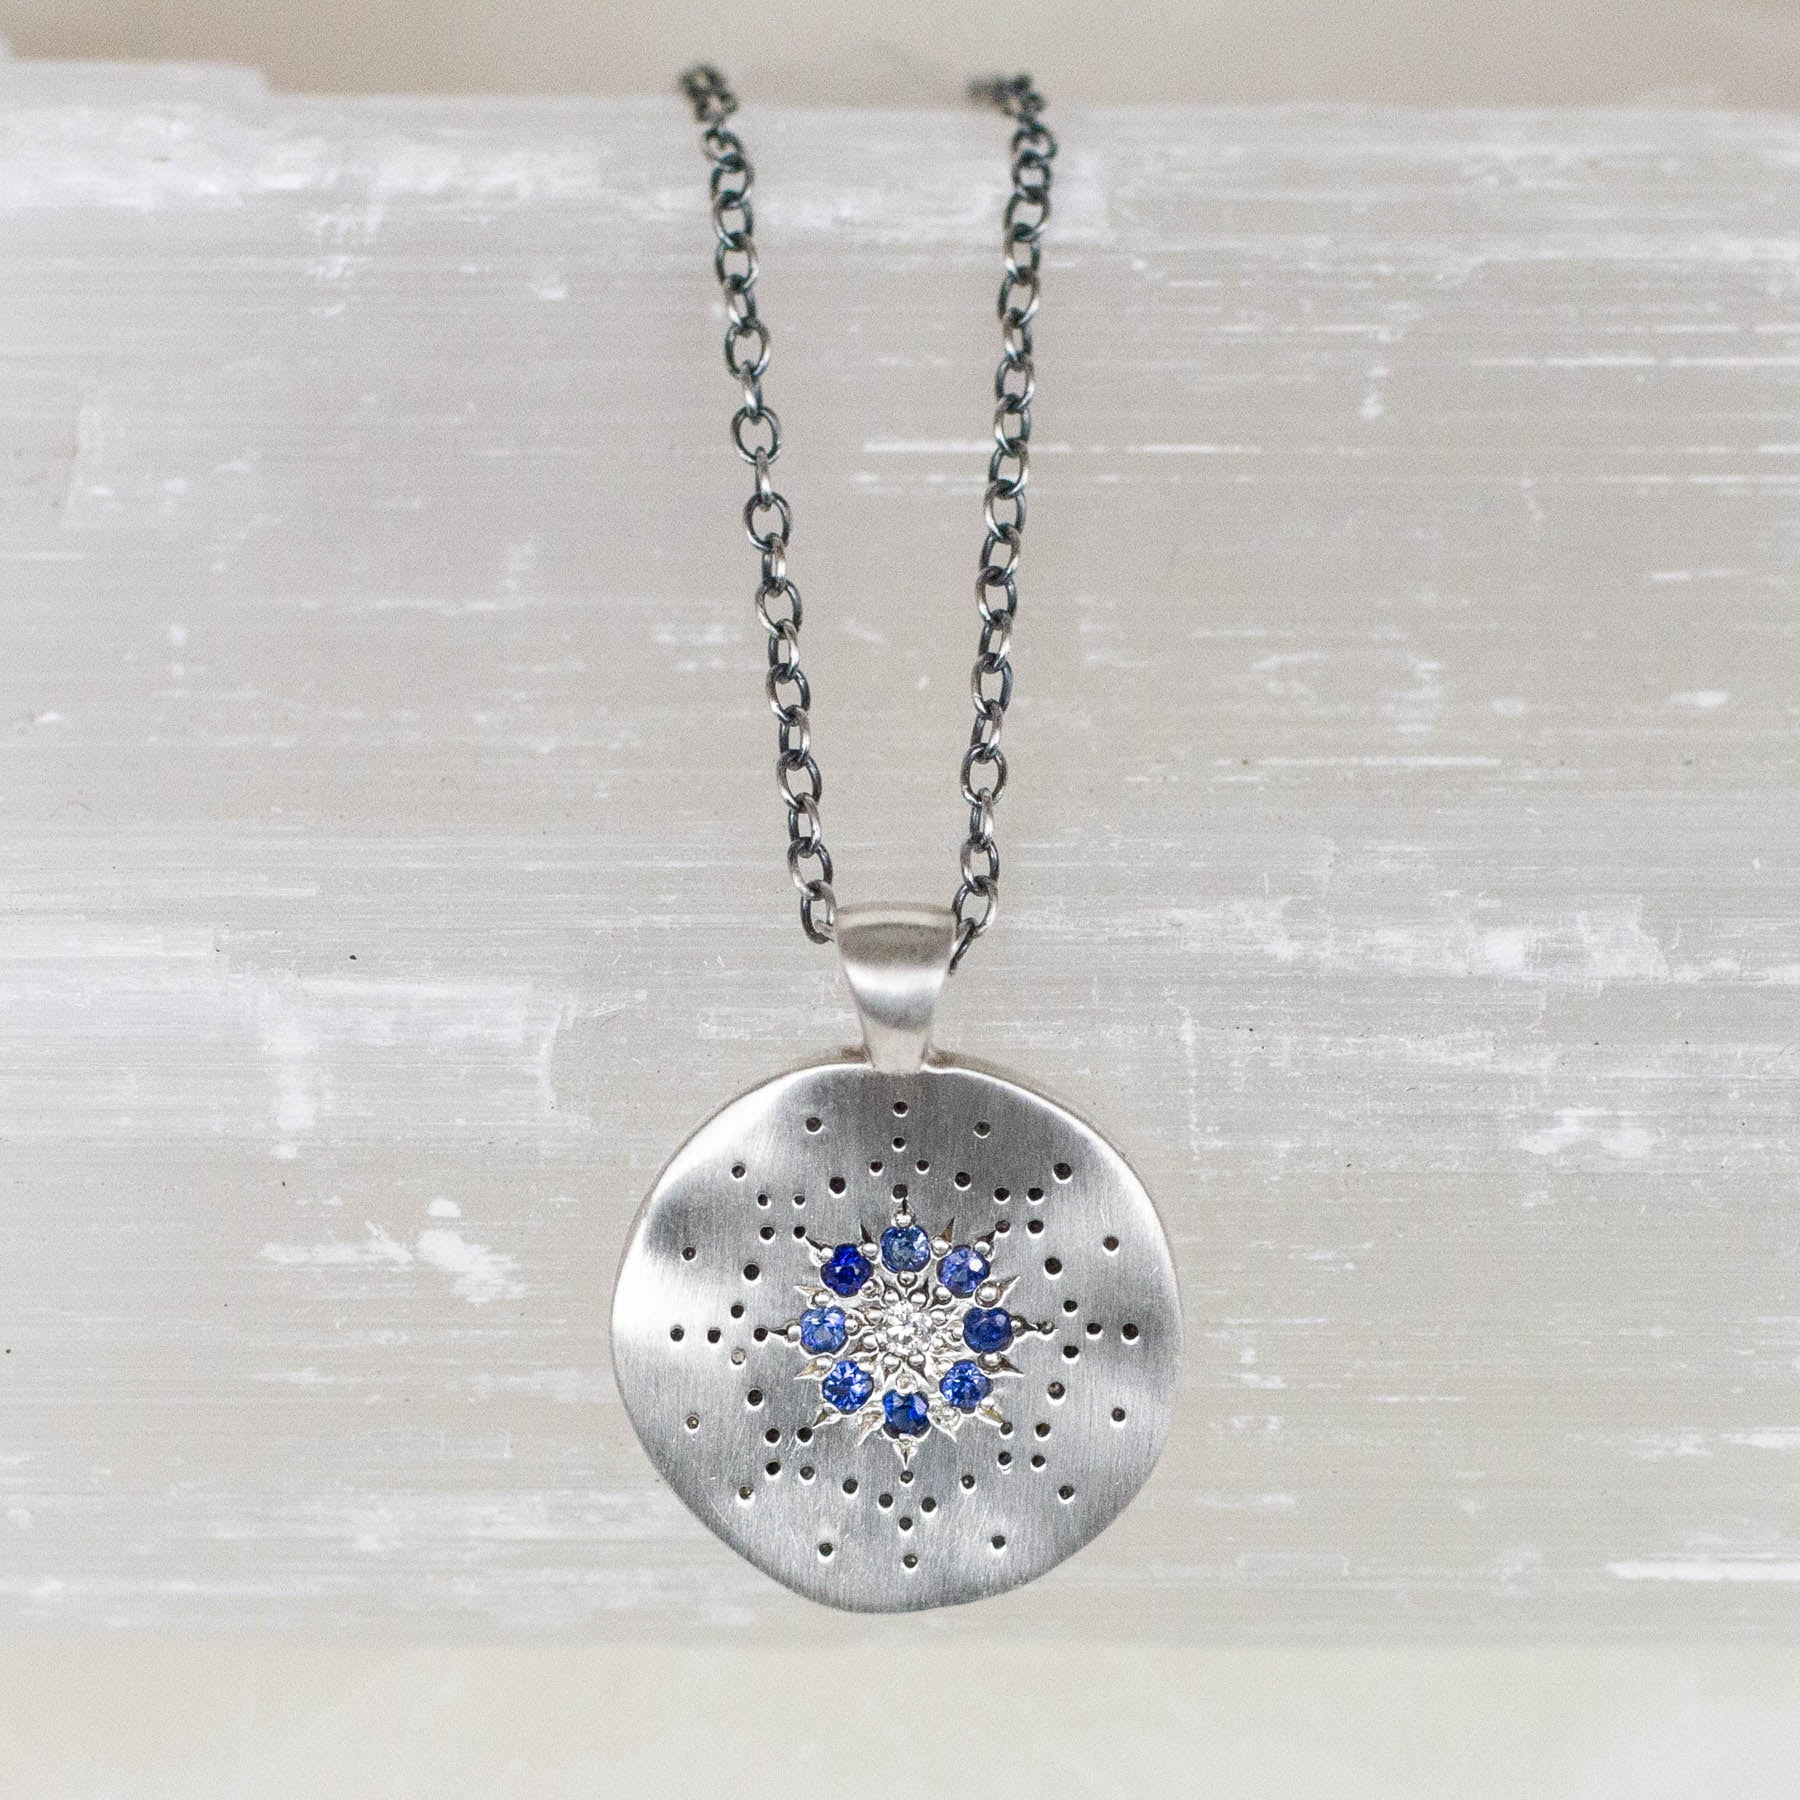 Reflections Pendant Necklace